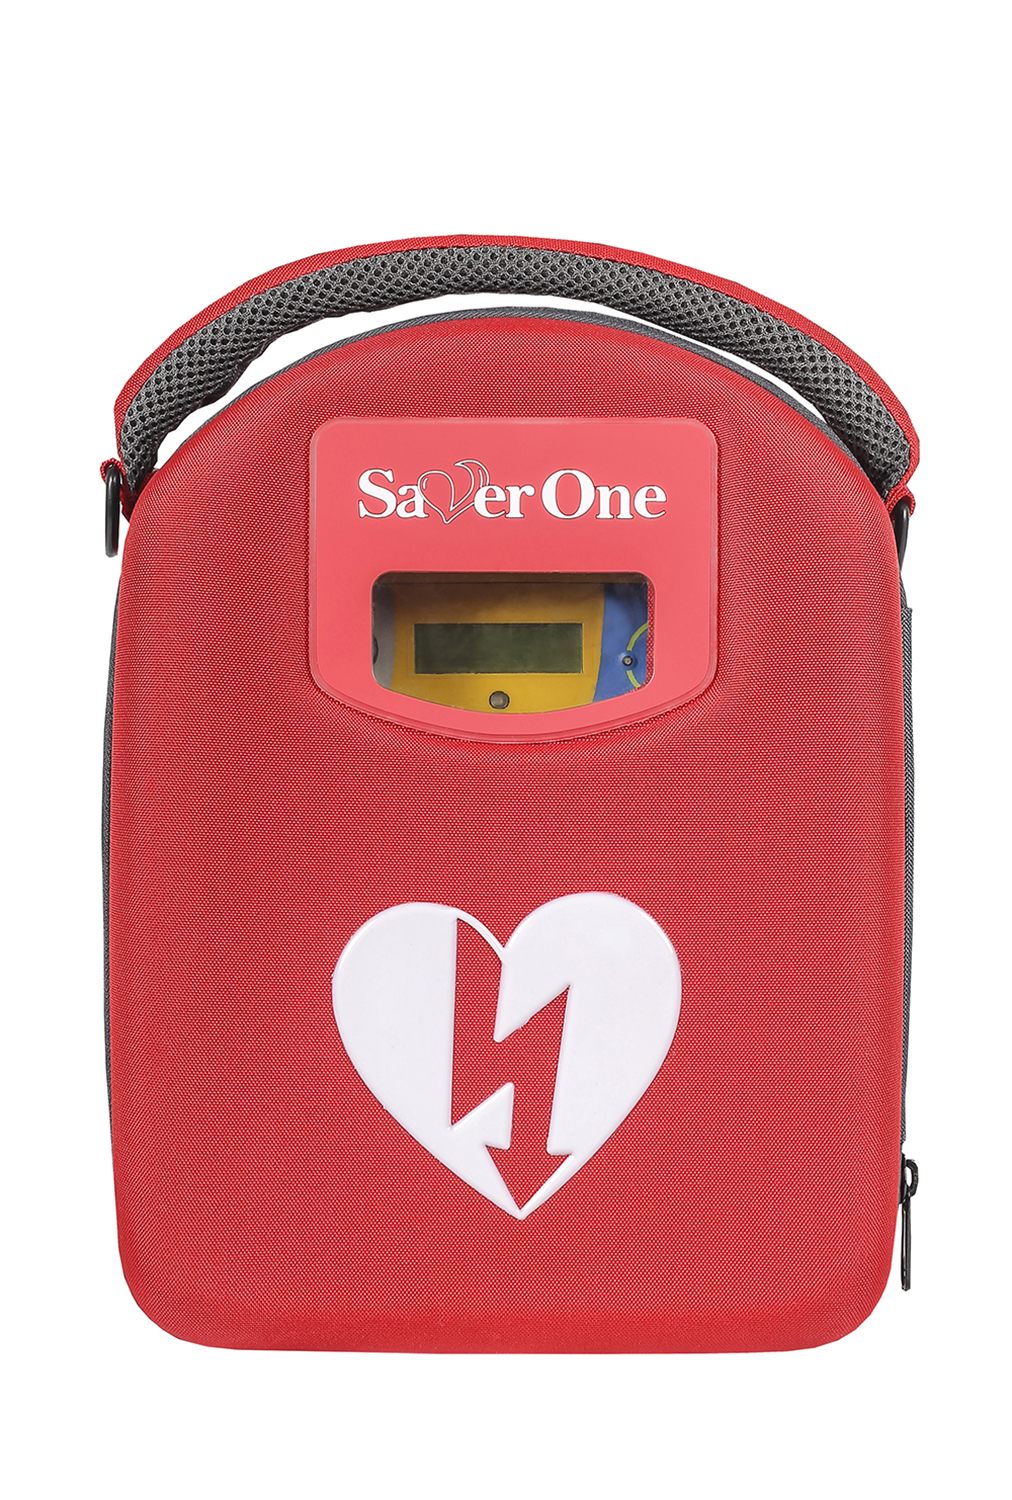 Saver One AED Defibrillator / Vollautomat